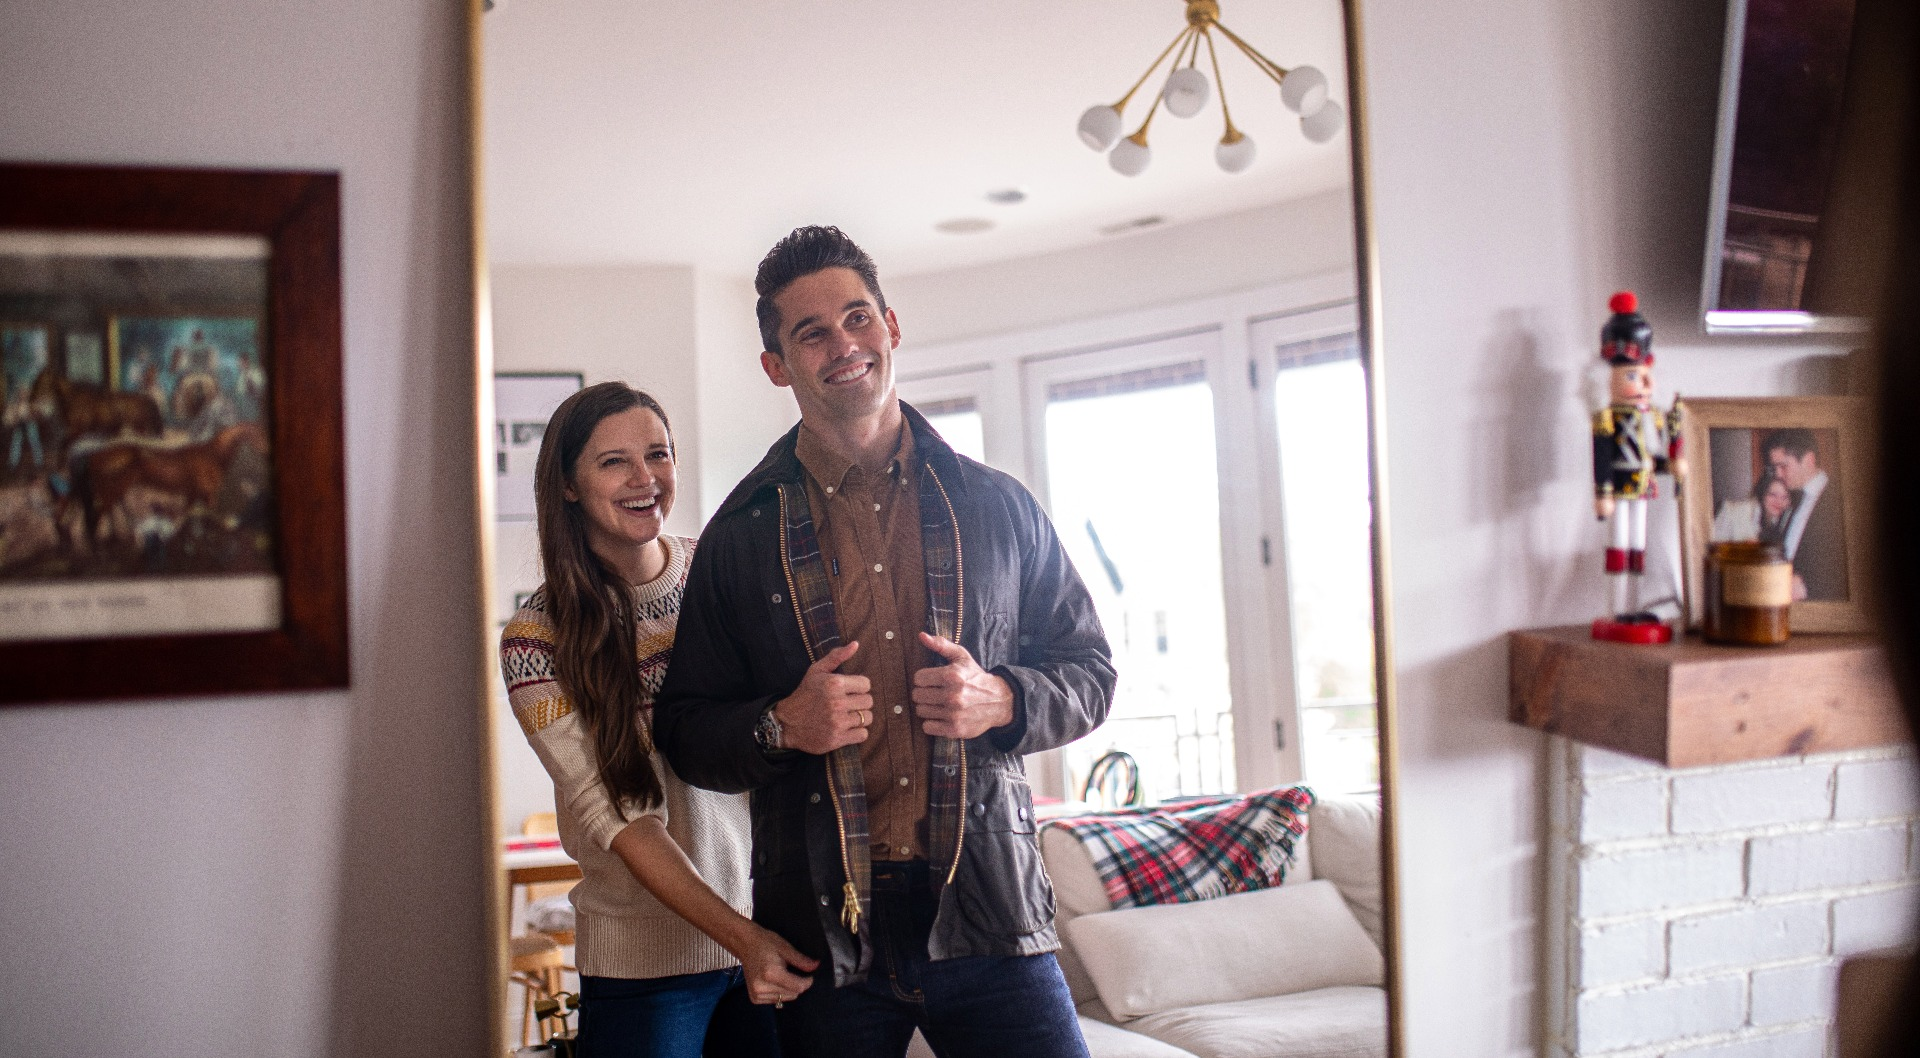 Jess Keys and her husband Neal with his gifted Barbour Bedale waxed jacket.